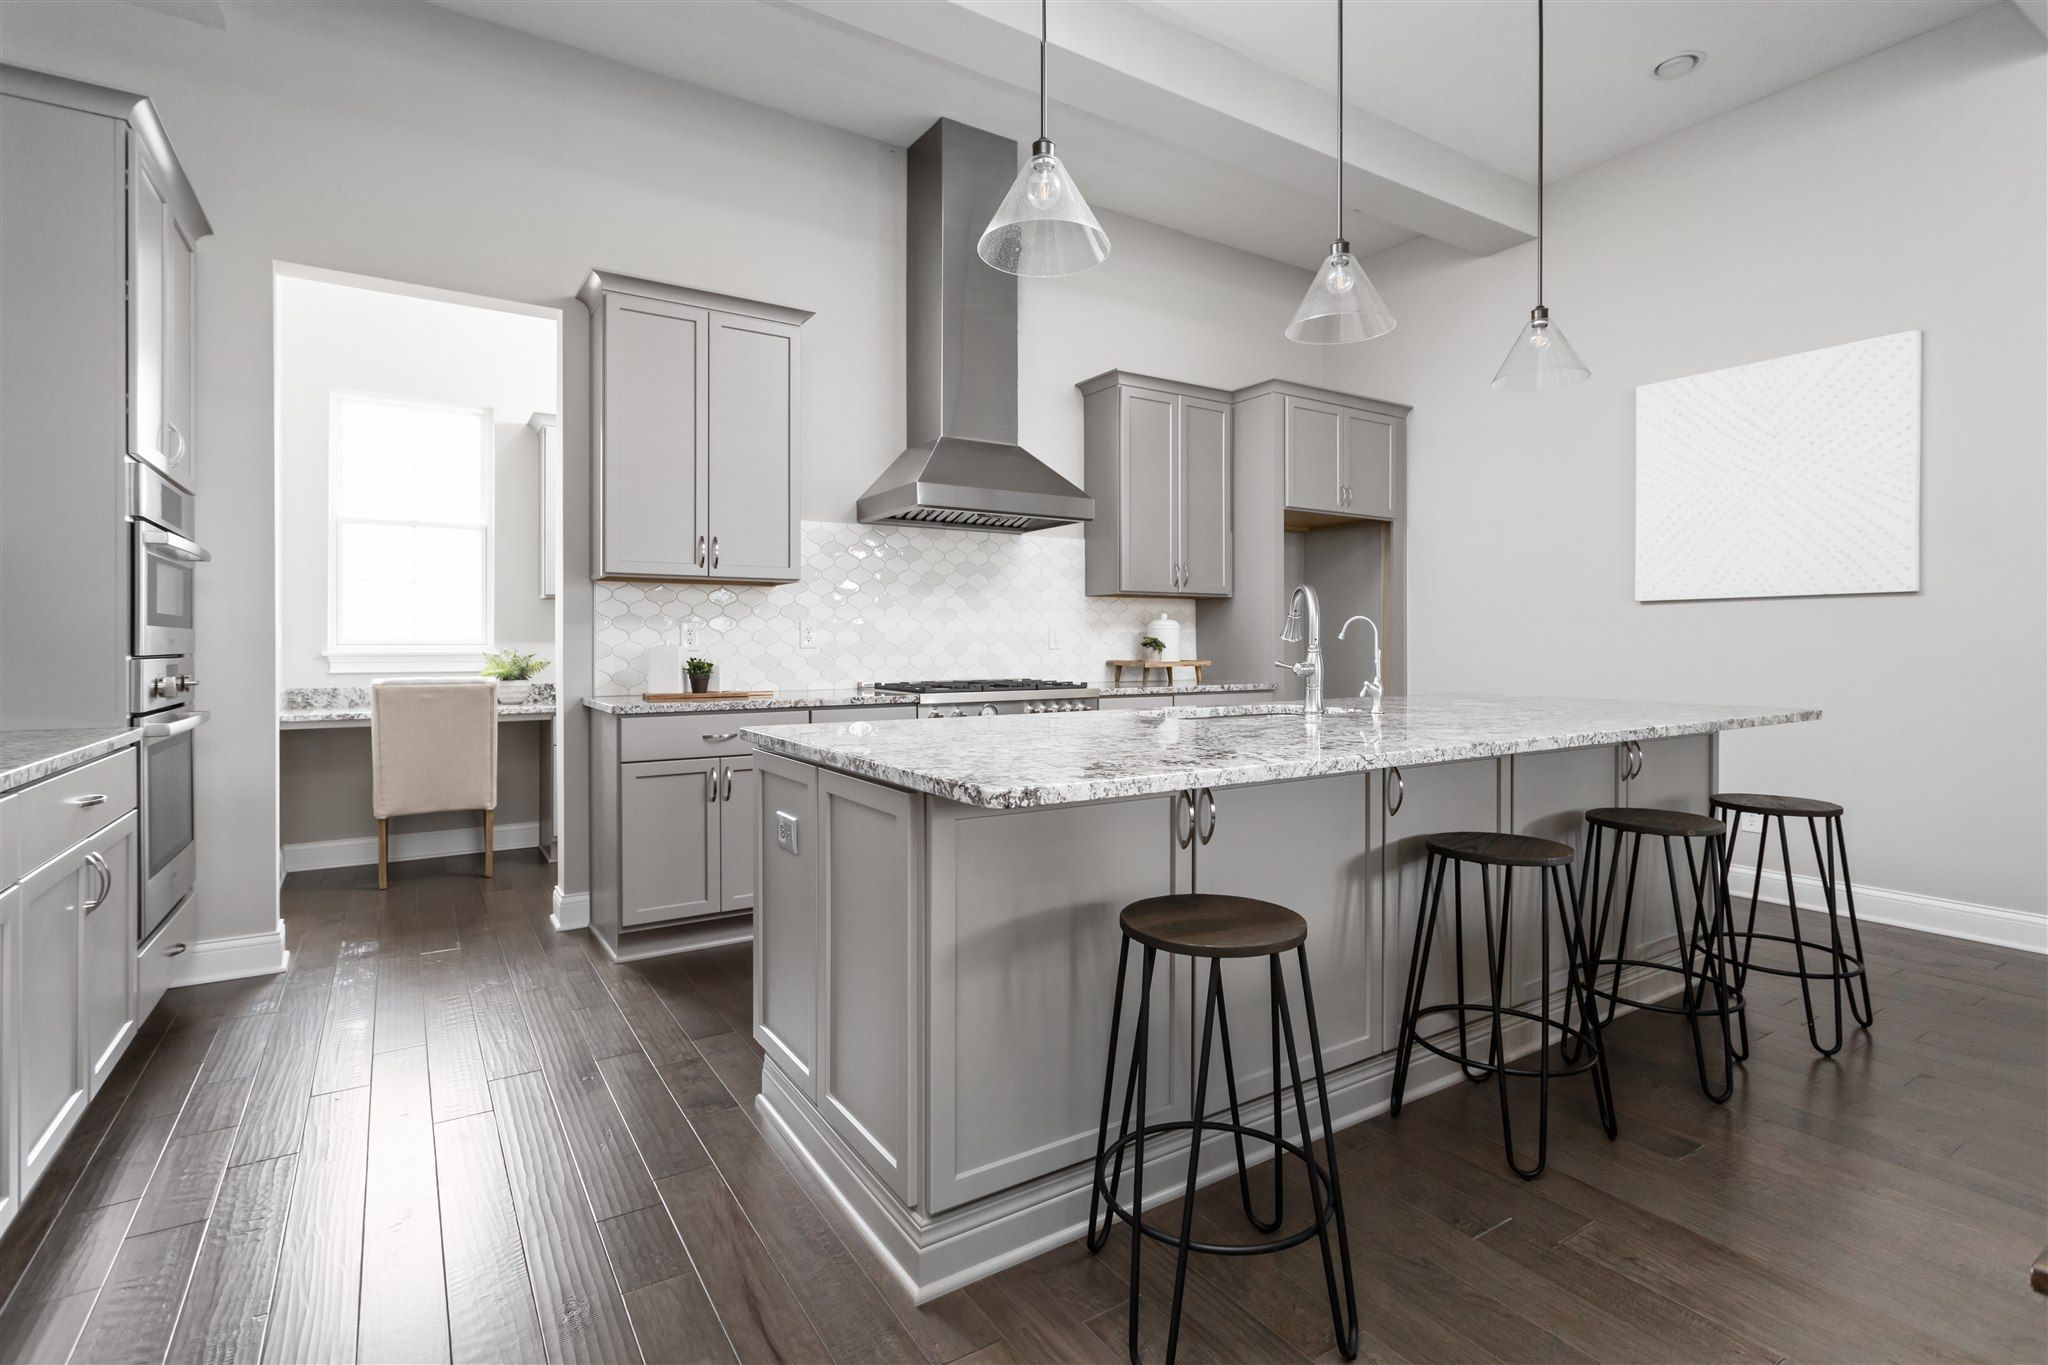 Kitchen featured in the Lockerbie 331 By Estridge Homes in Indianapolis, IN